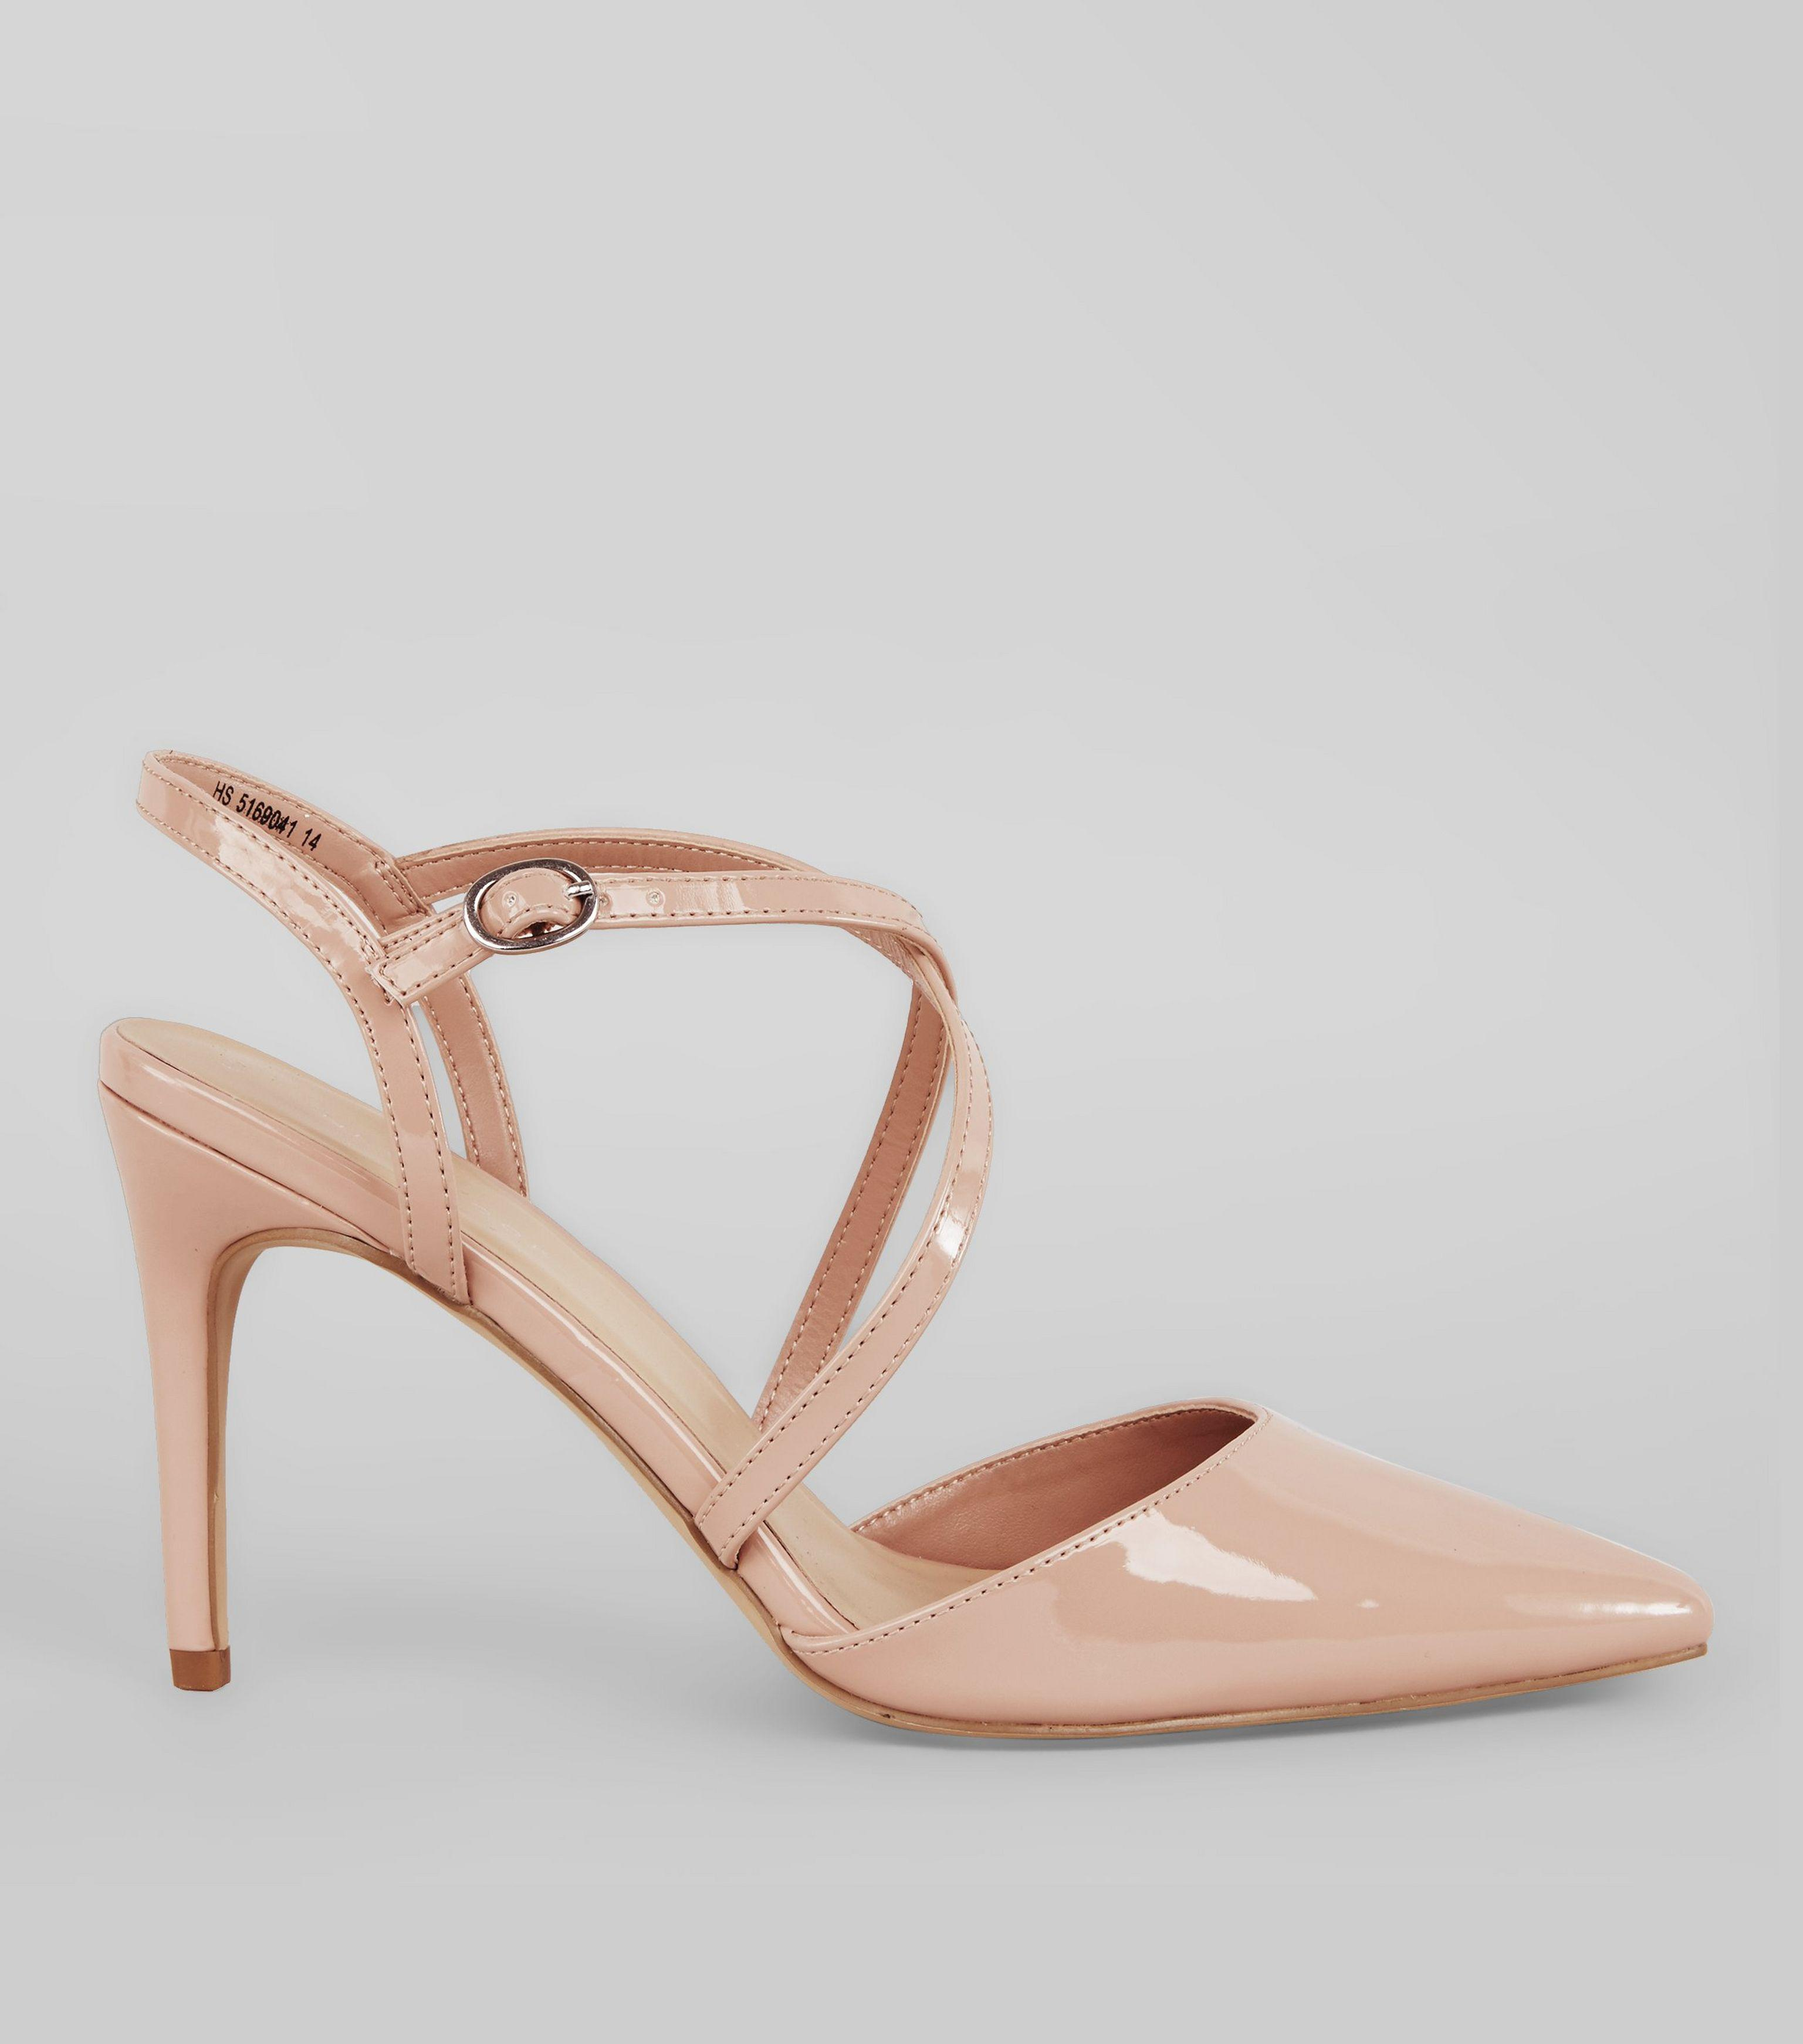 46222f82e973 New Look Nude Pink Patent Cross Strap Pointed Heels - Lyst